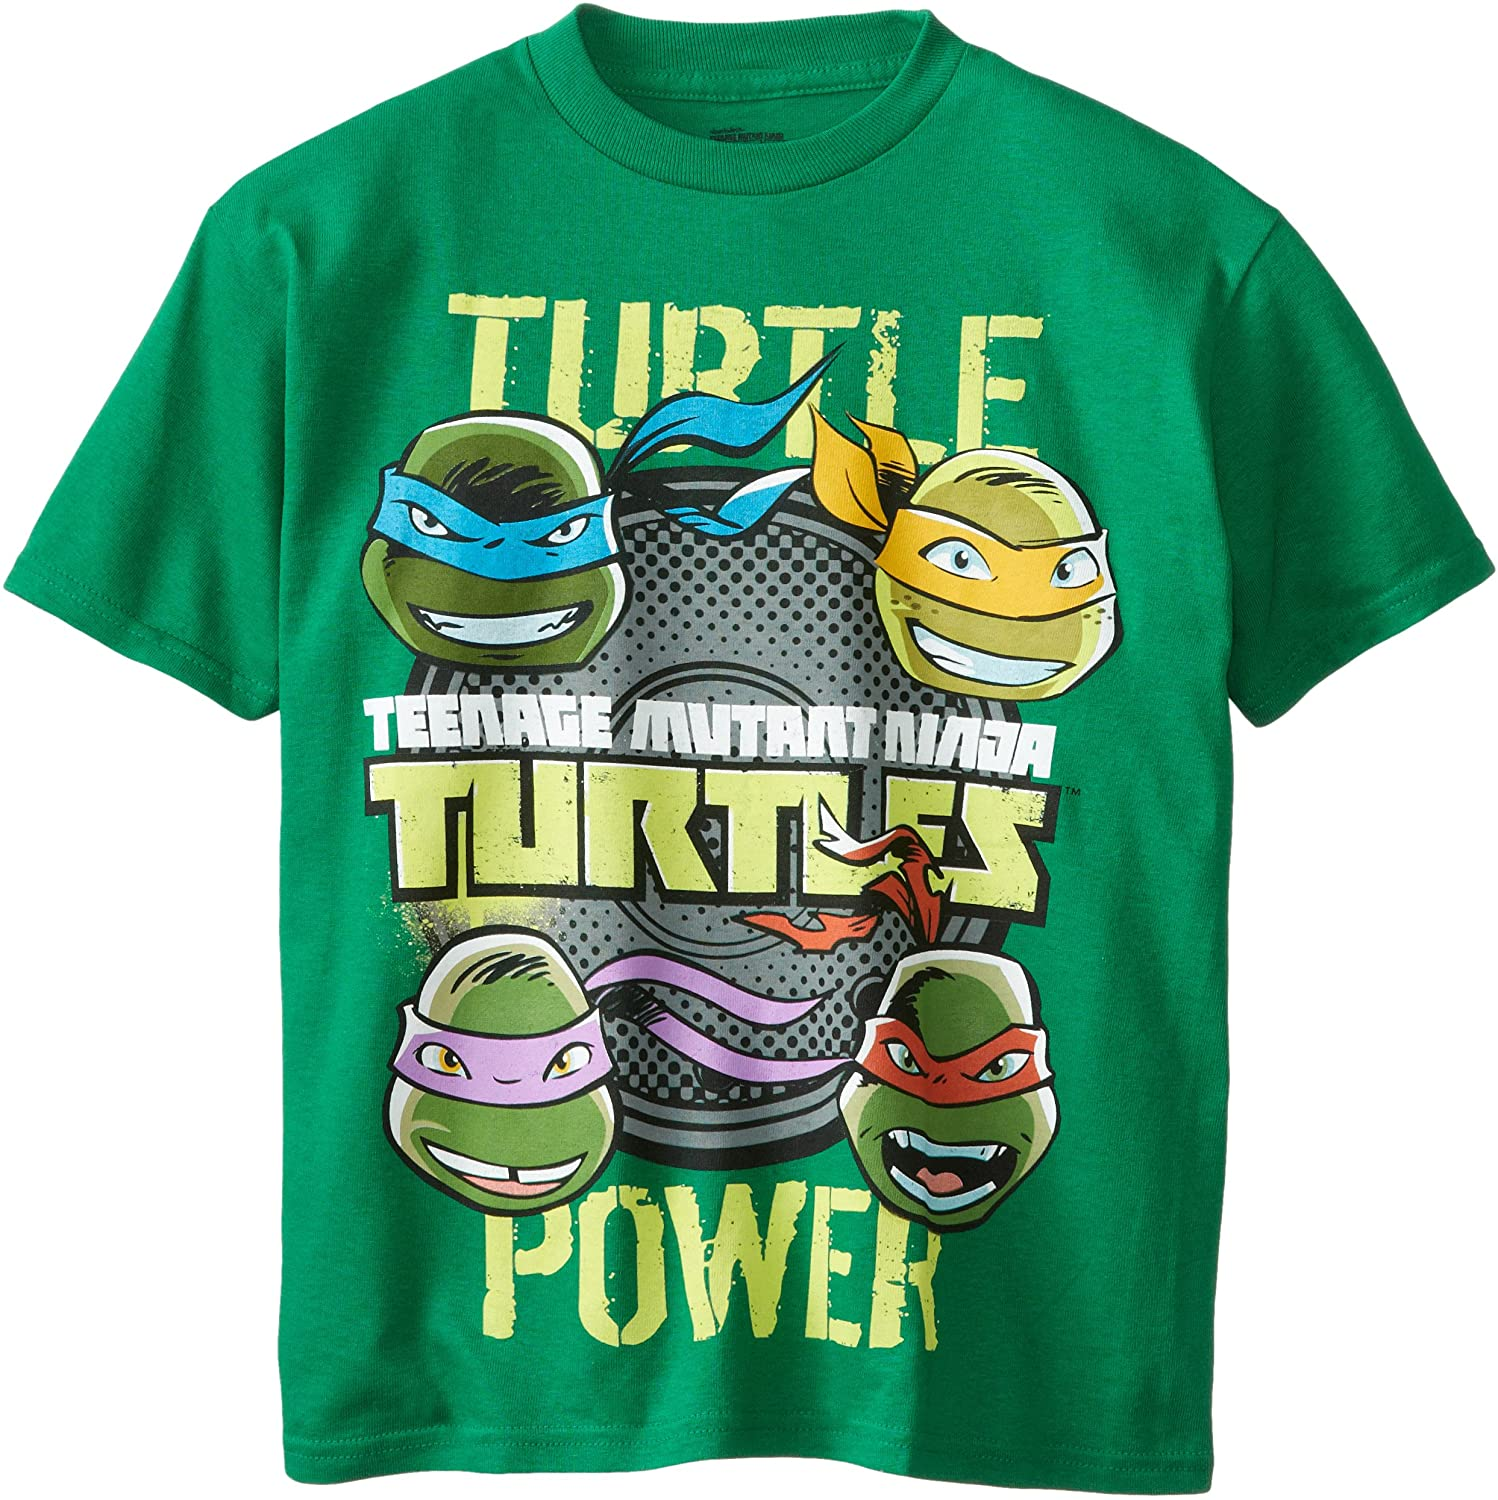 Teenage Mutant Ninja Turtles Big Boys' Short Sleeve T-Shirt Shirt, Kelly Green, X-Large/ 18